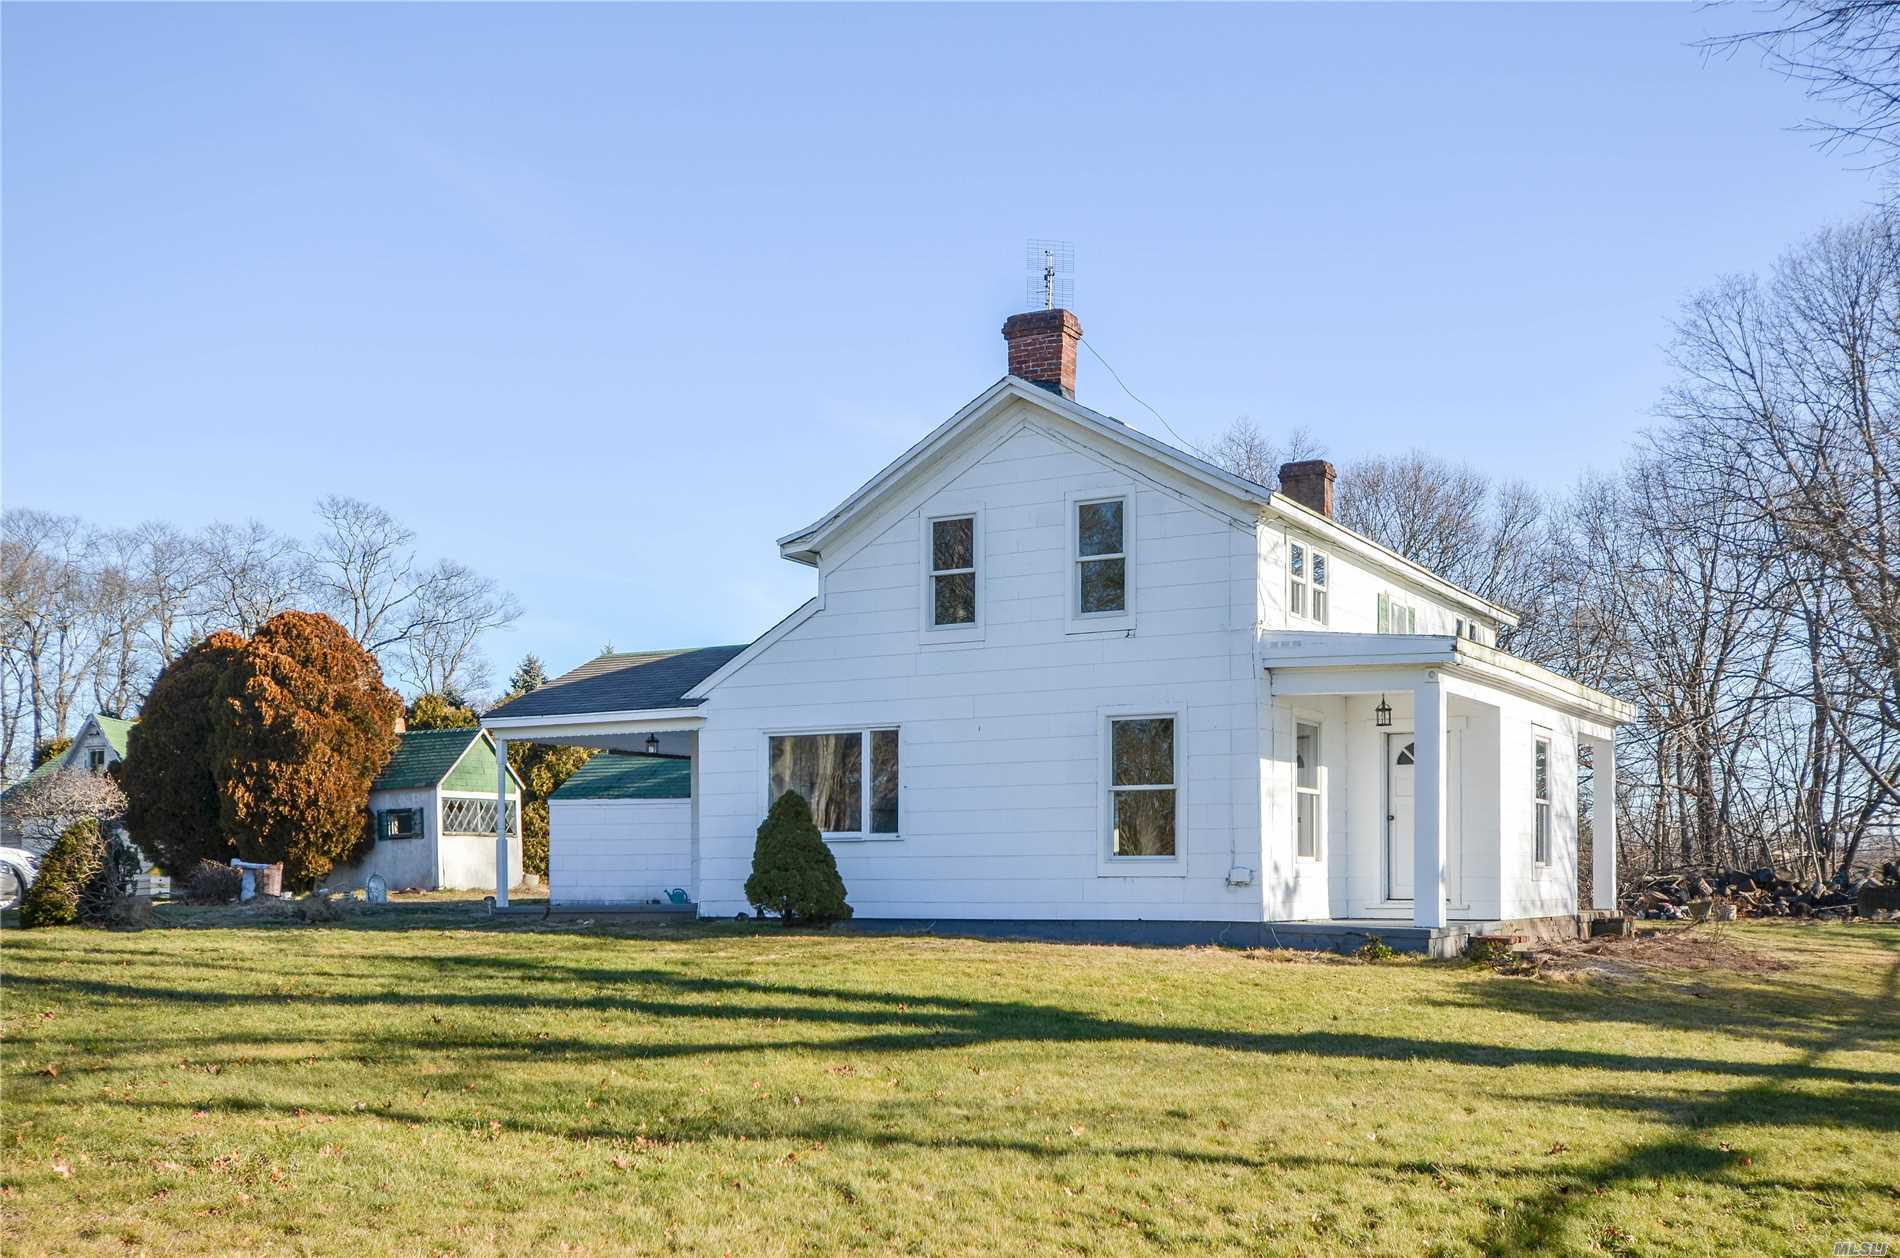 If Small Town, Fresh Air, And Plenty Of Green, Open Spaces Sound Like The Perfect Place, Then This One Is For You! This Farmhouse Offers A Balance Between Rustic And Chic; Remodeled Bathroom, Updated Kitchen, New Windows, Fresh Paint All While Holding On To Many Of The Original Charming Details. Freshly Refinished Original Wide Plank Floors Round Out The Great Condition Of This Home. Farm Views Just About Everywhere You Look!